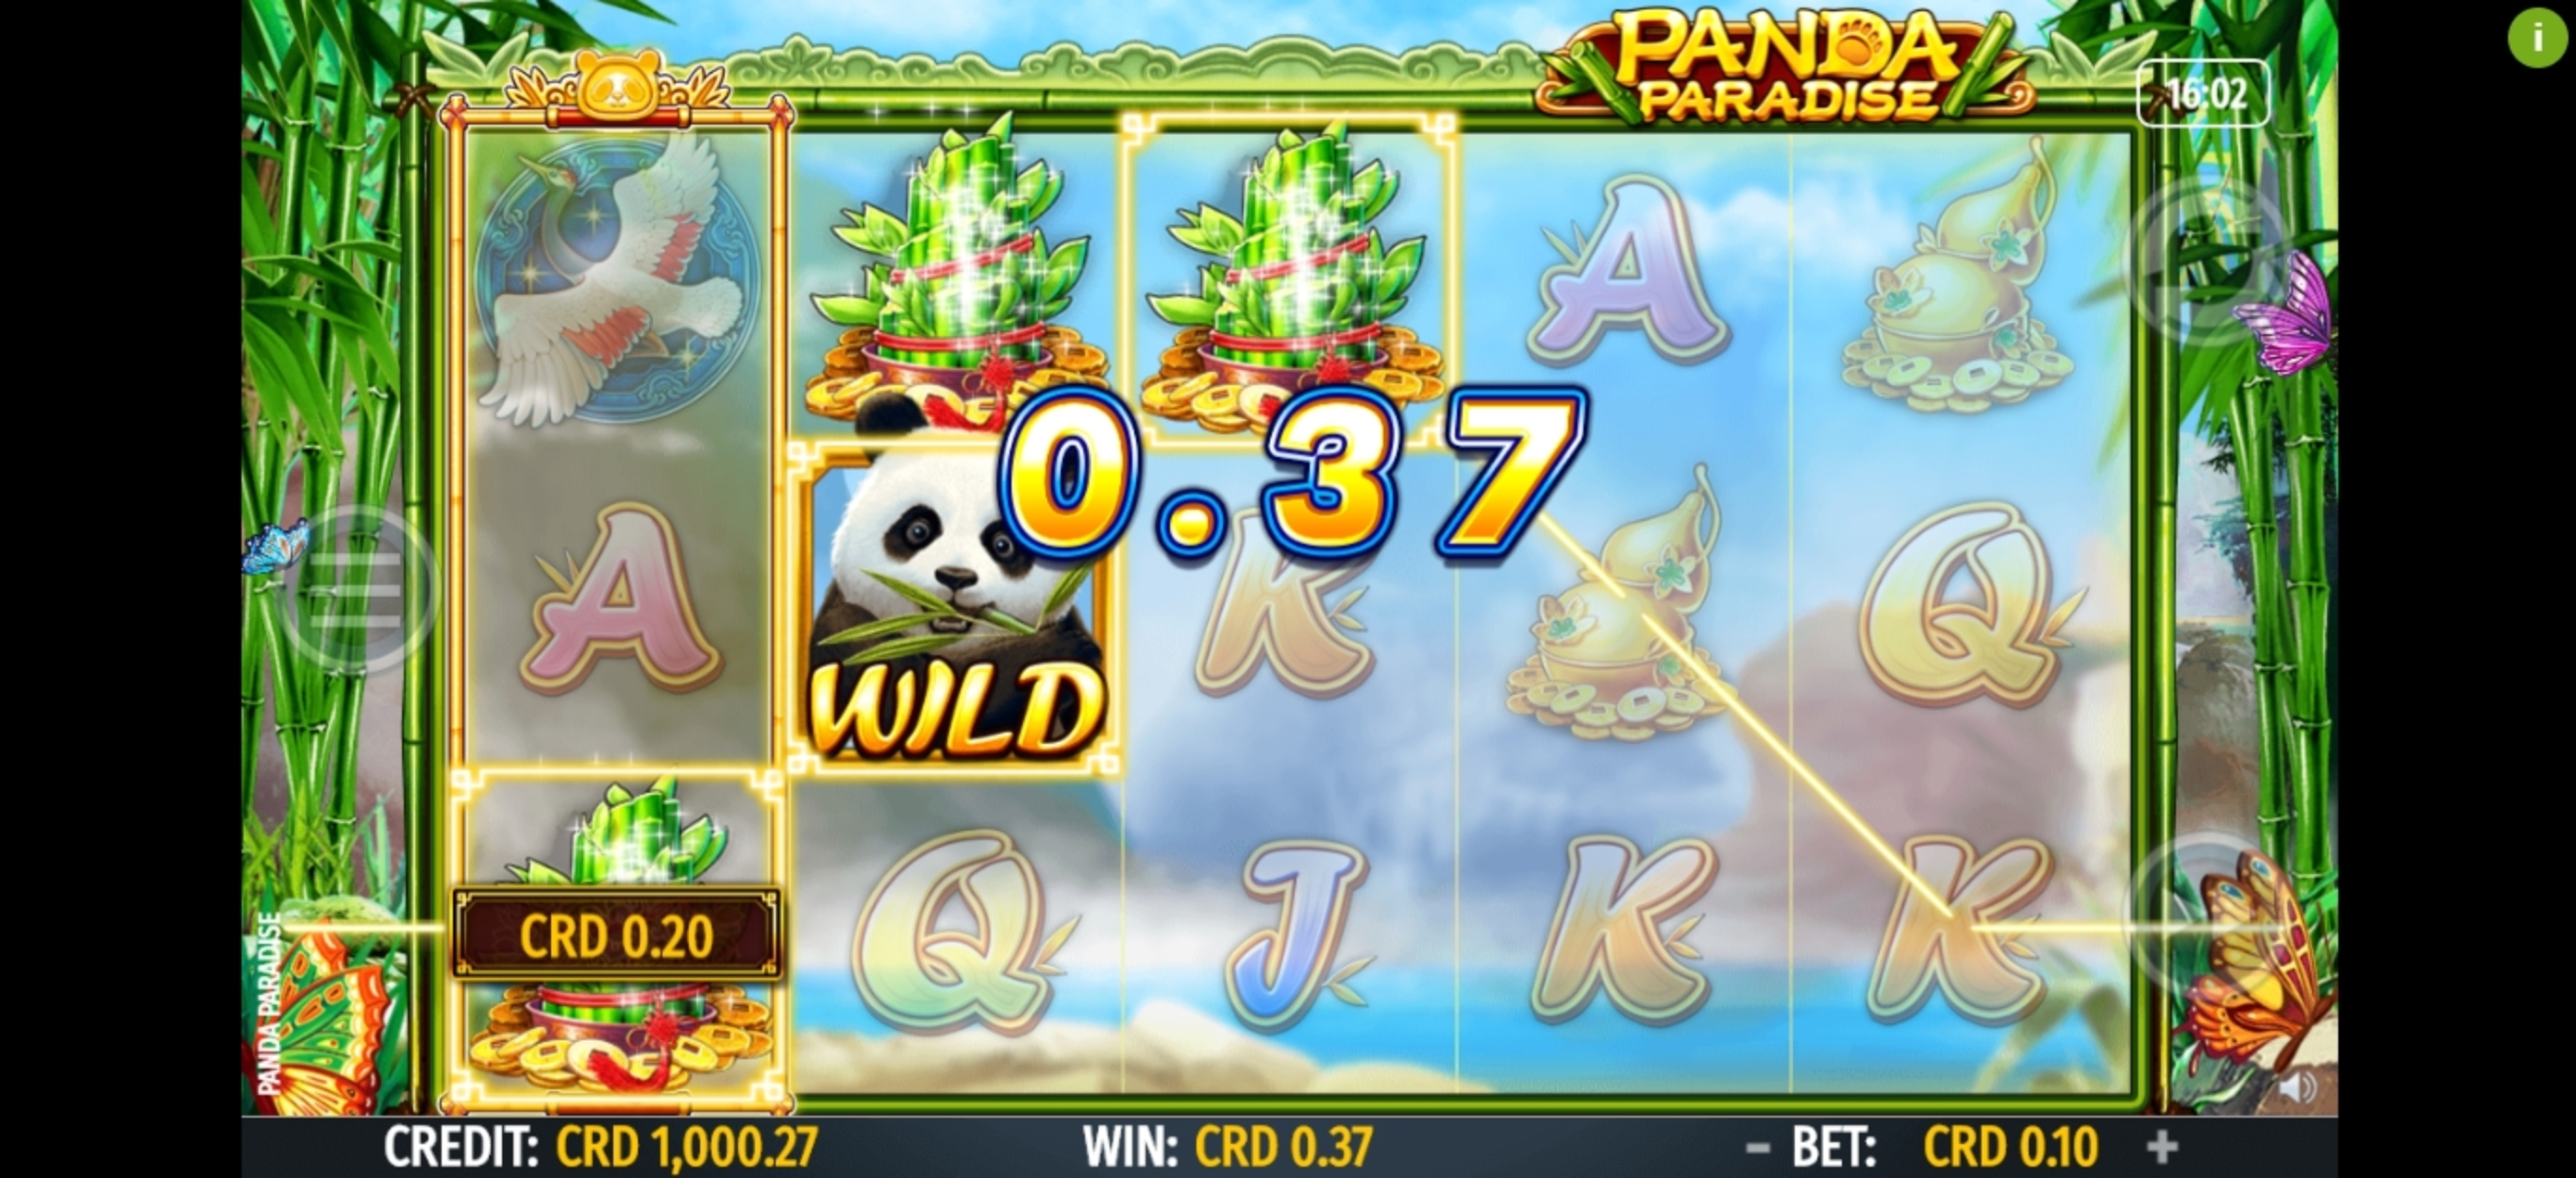 Win Money in Panda Paradise Free Slot Game by Octavian Gaming